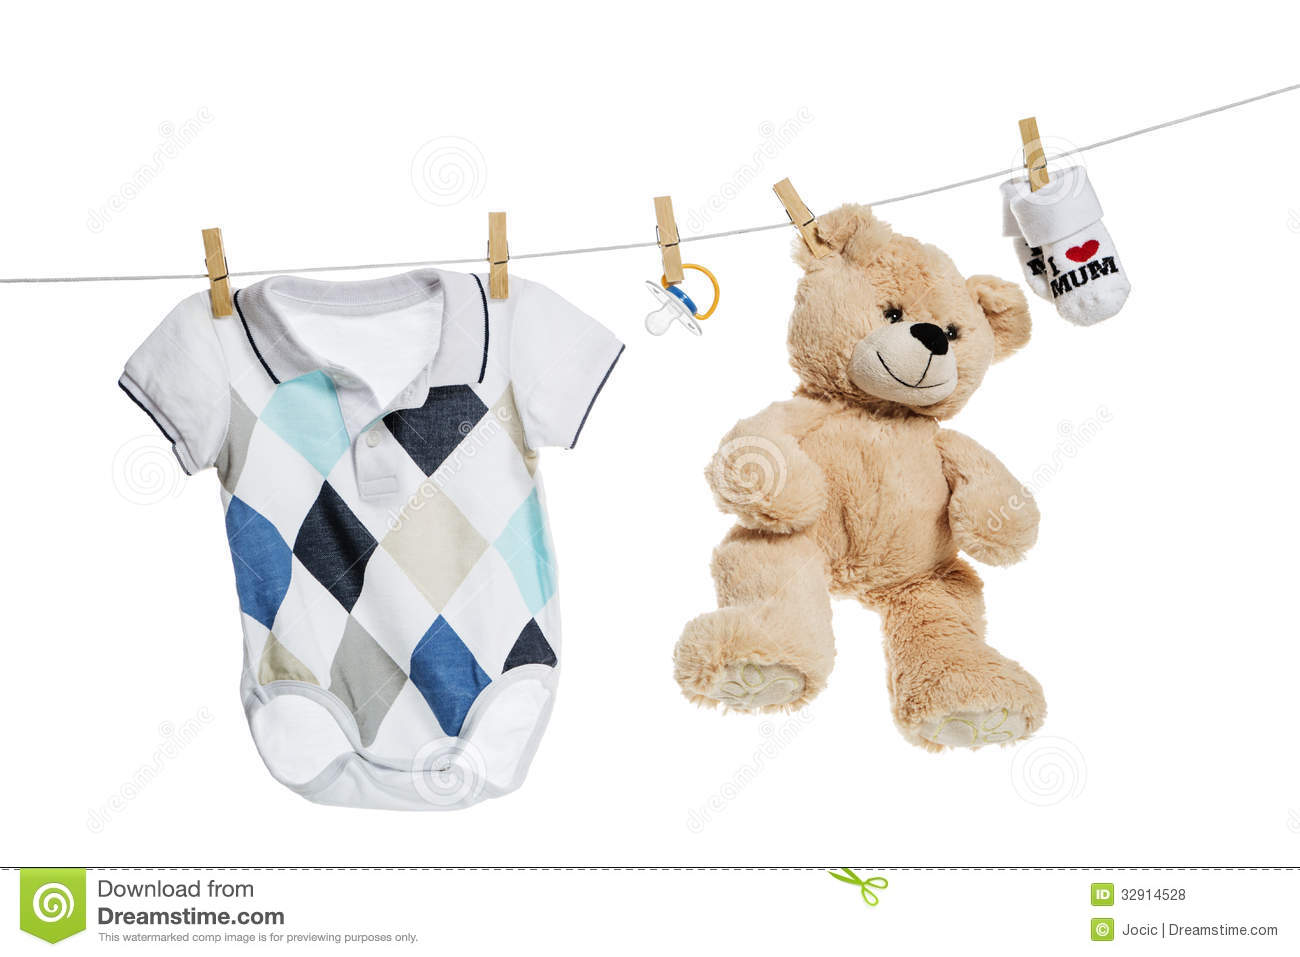 You searched for: baby bear clothes! Etsy is the home to thousands of handmade, vintage, and one-of-a-kind products and gifts related to your search. No matter what you're looking for or where you are in the world, our global marketplace of sellers can help you find unique and affordable options. Let's get started!